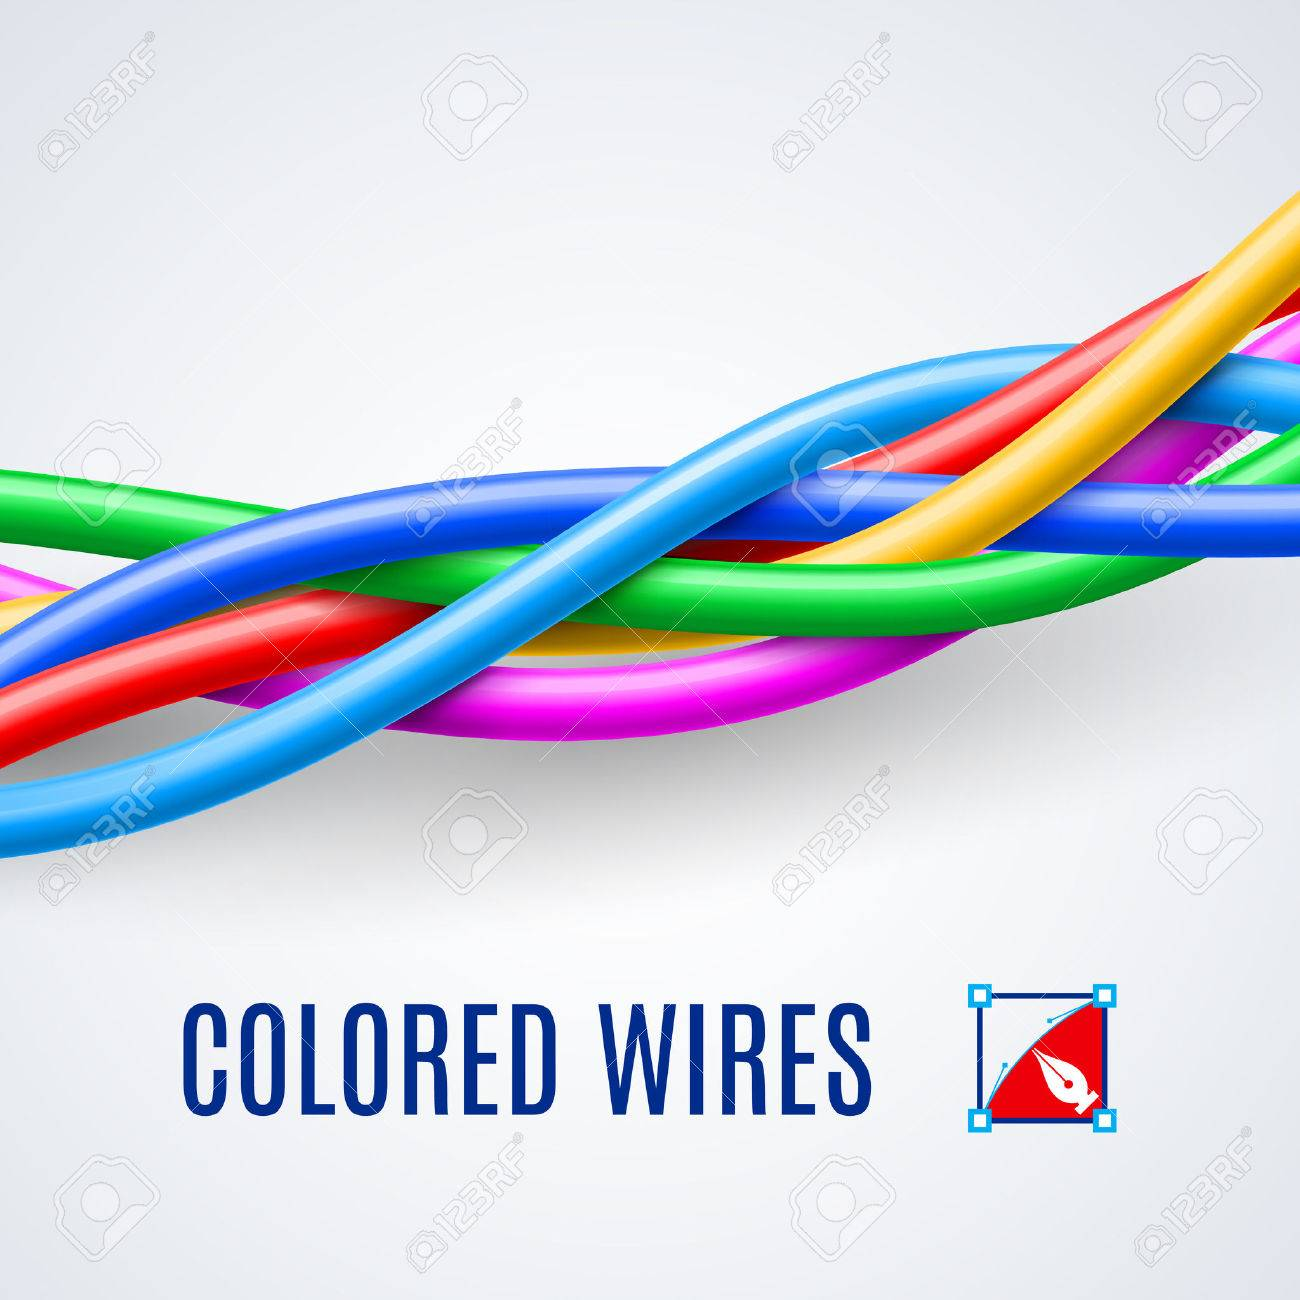 Interwoven Plastic Wires Or Cables In Different Colors Royalty Free ...